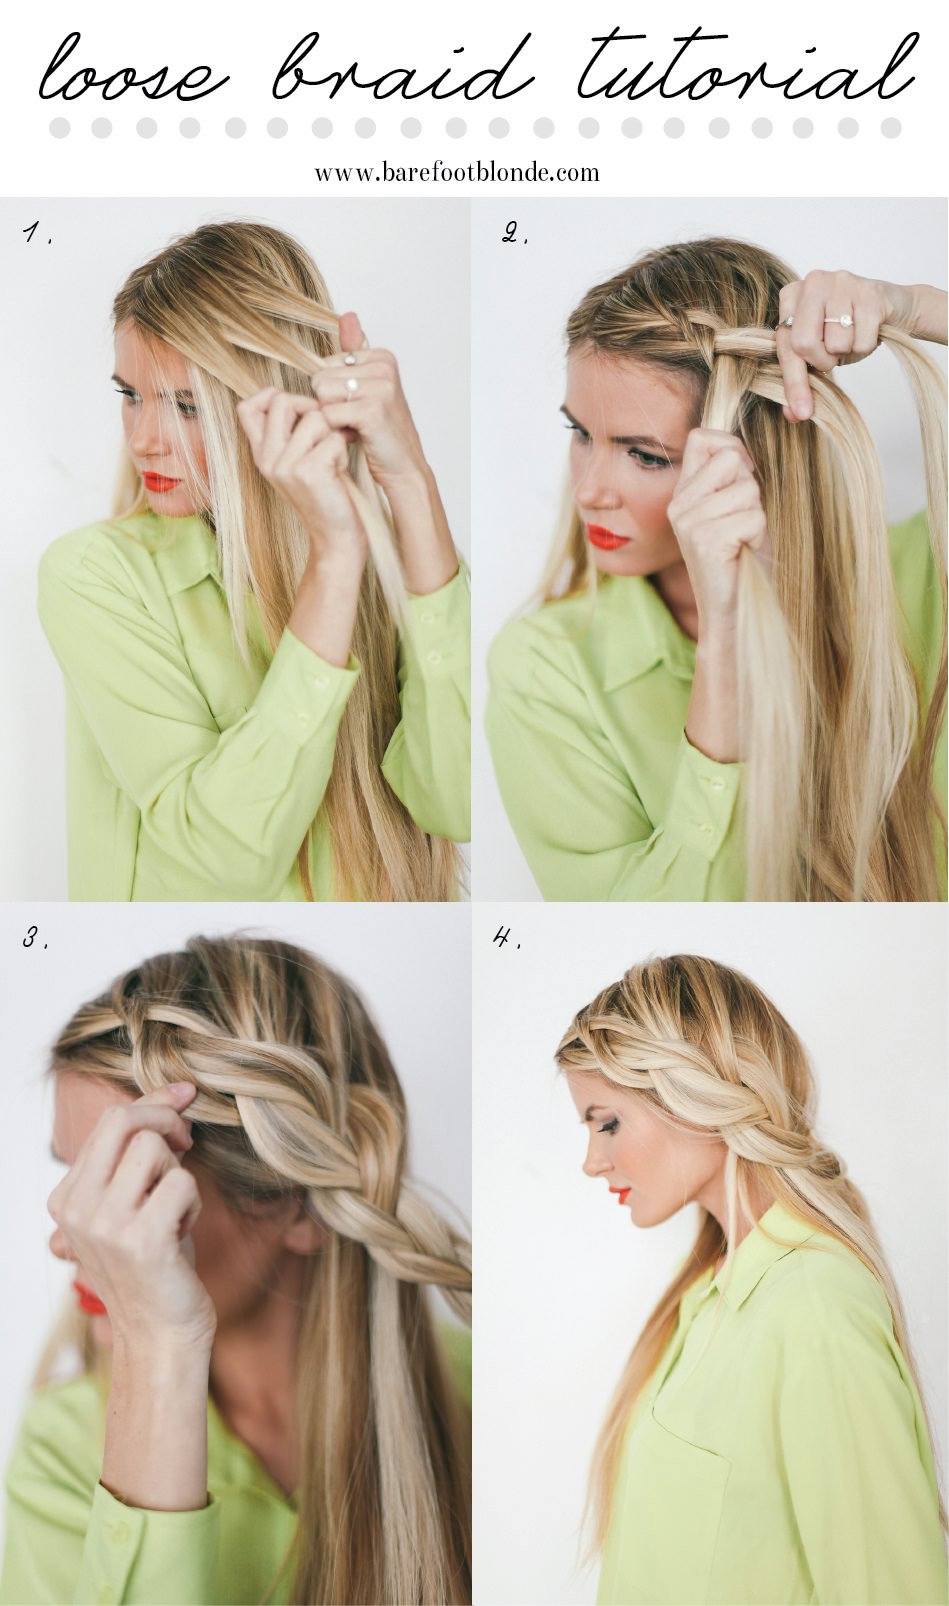 LOSE BOHO BRAID